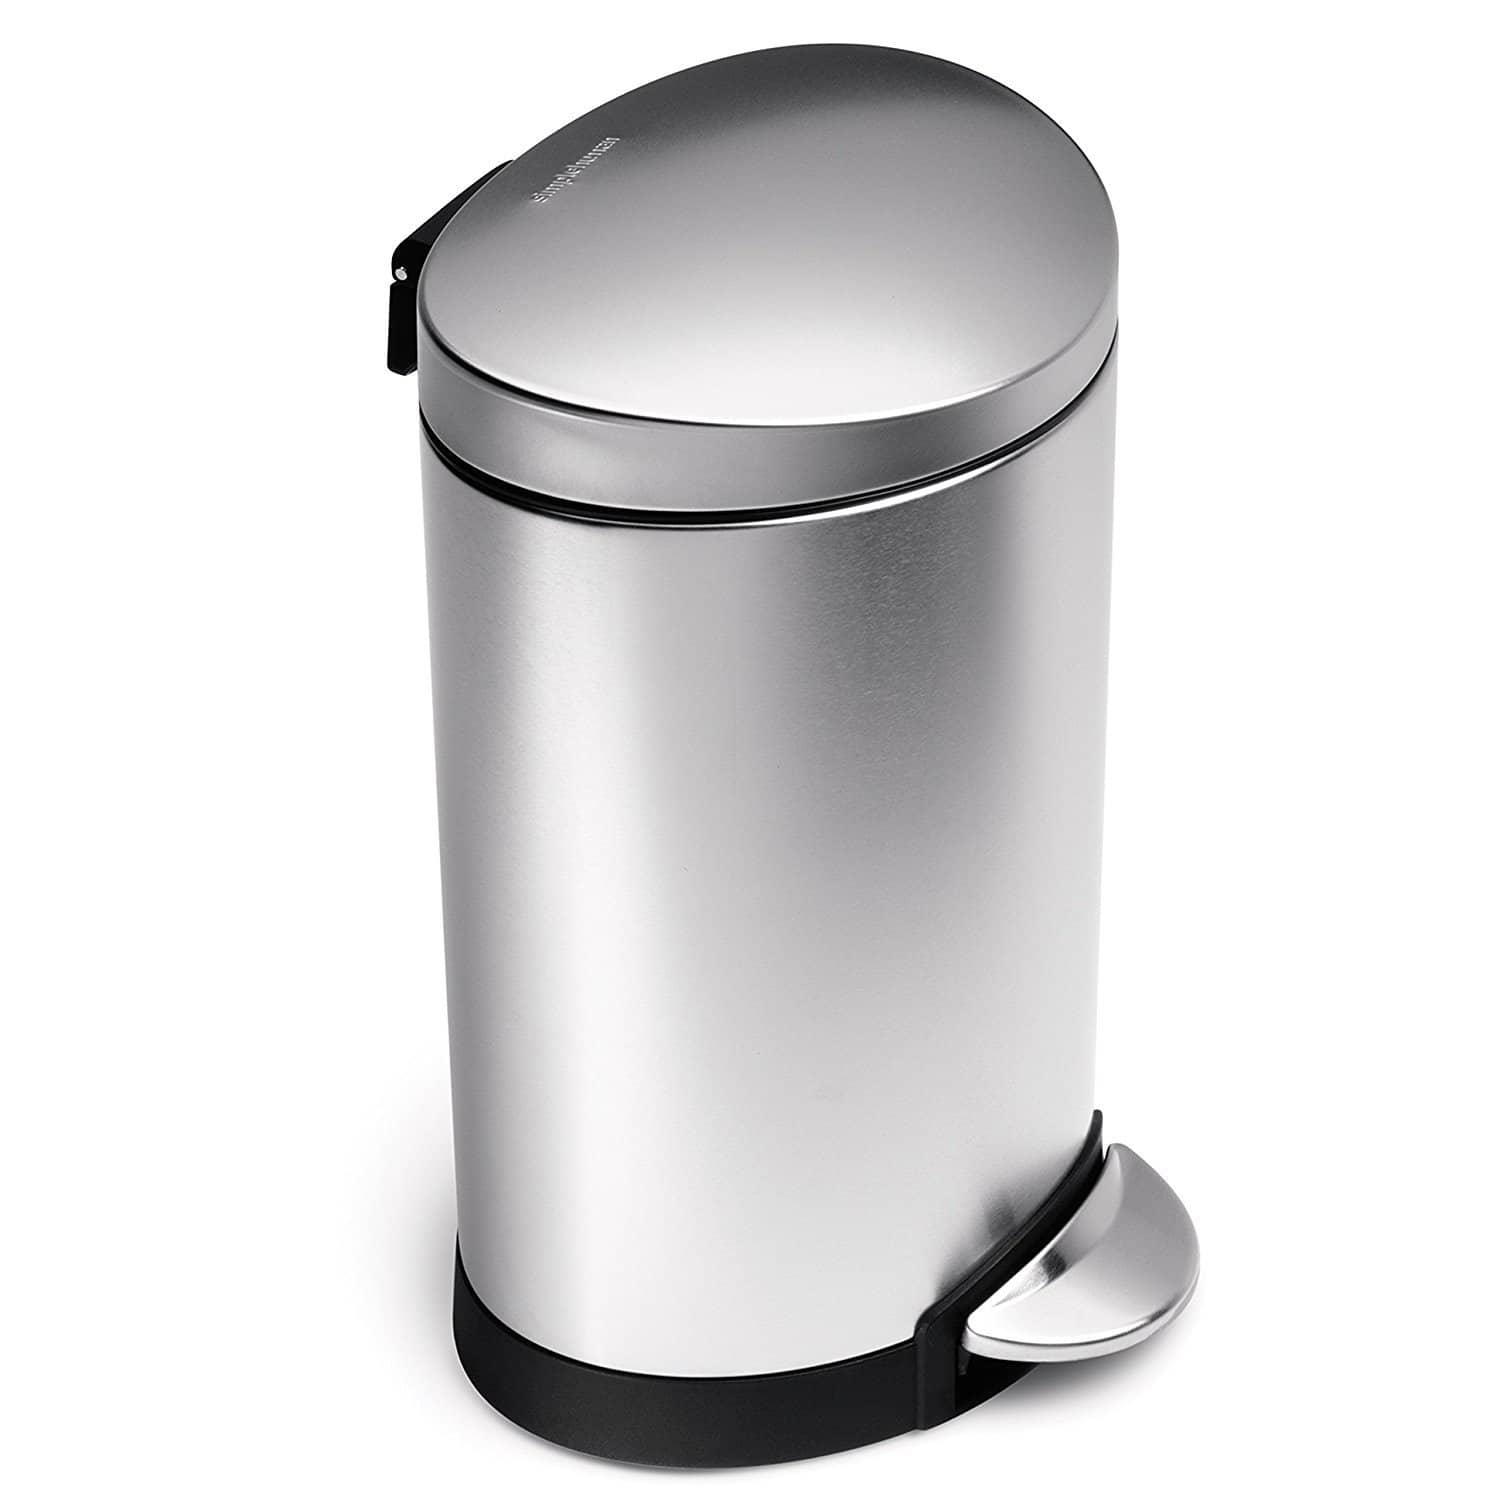 Simplehuman 6 Liter 1 Gallon Stainless Steel Compact Semi Round Bathroom Step Trash Can